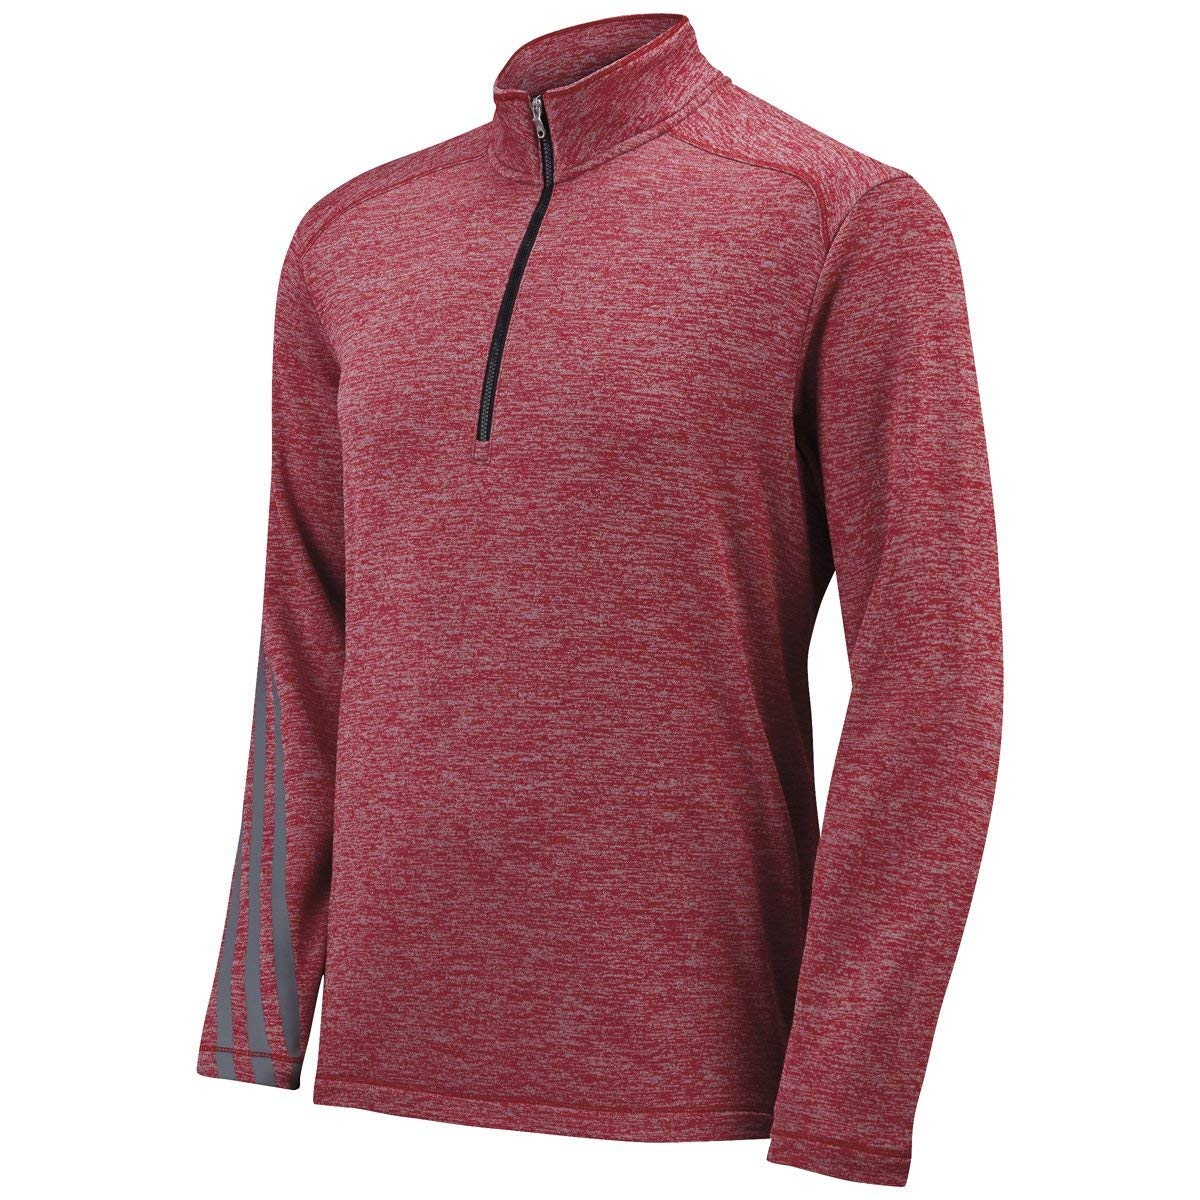 Power Red Heather  Black 4X-Large Adidas A284 Brushed Terry Heather Quarter-Zip